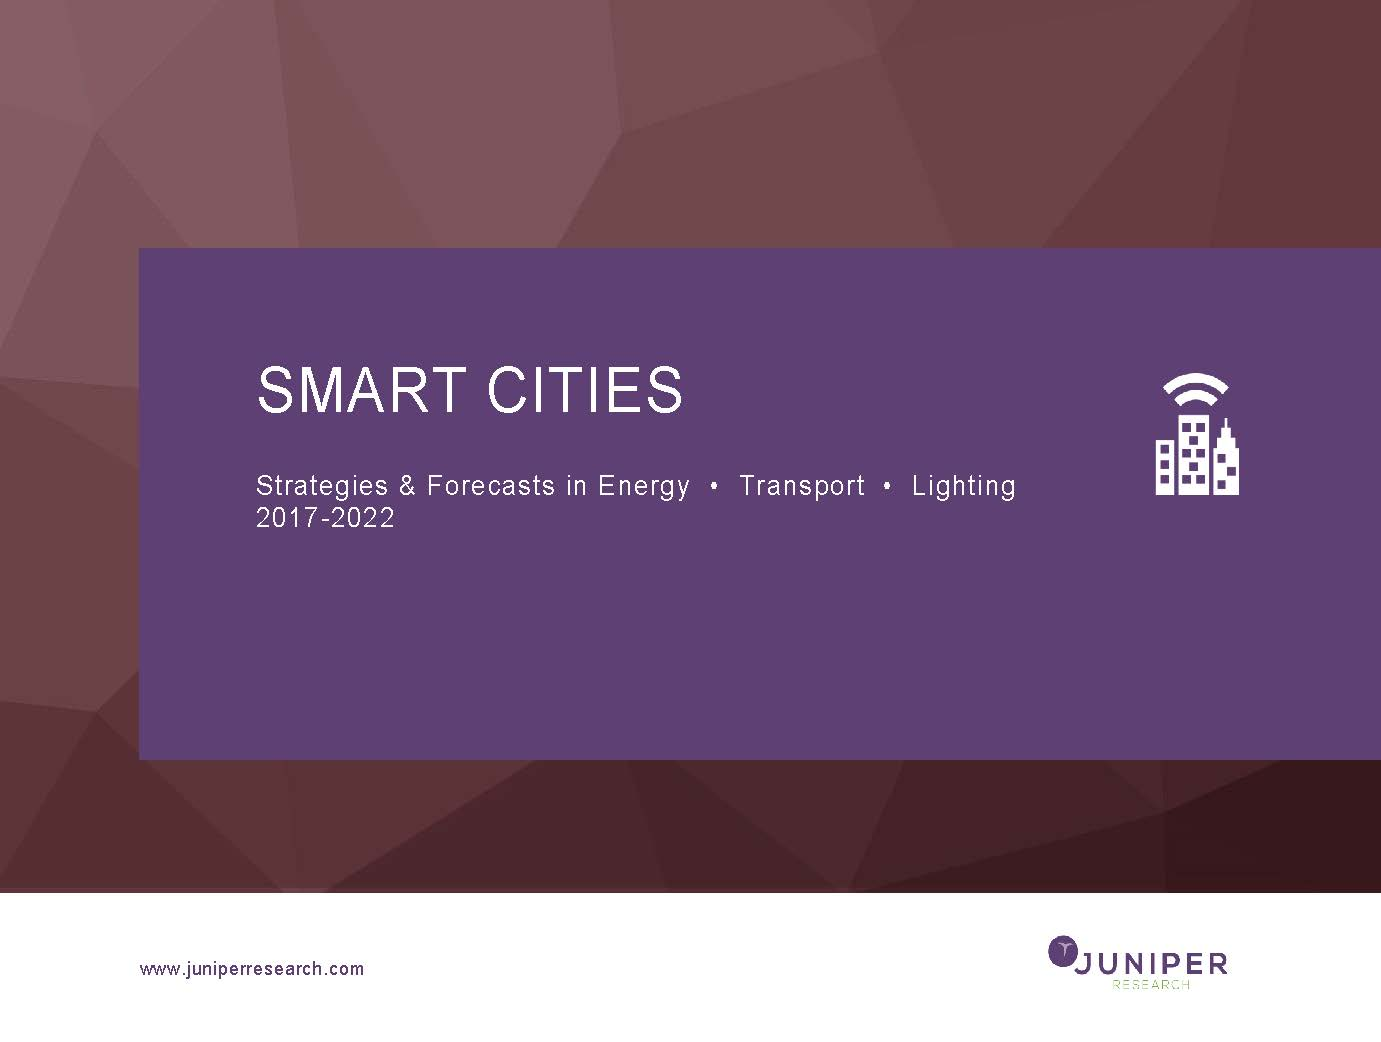 Smart Cities: Strategies & Forecasts in Energy, Transport & Lighting 2017-2022